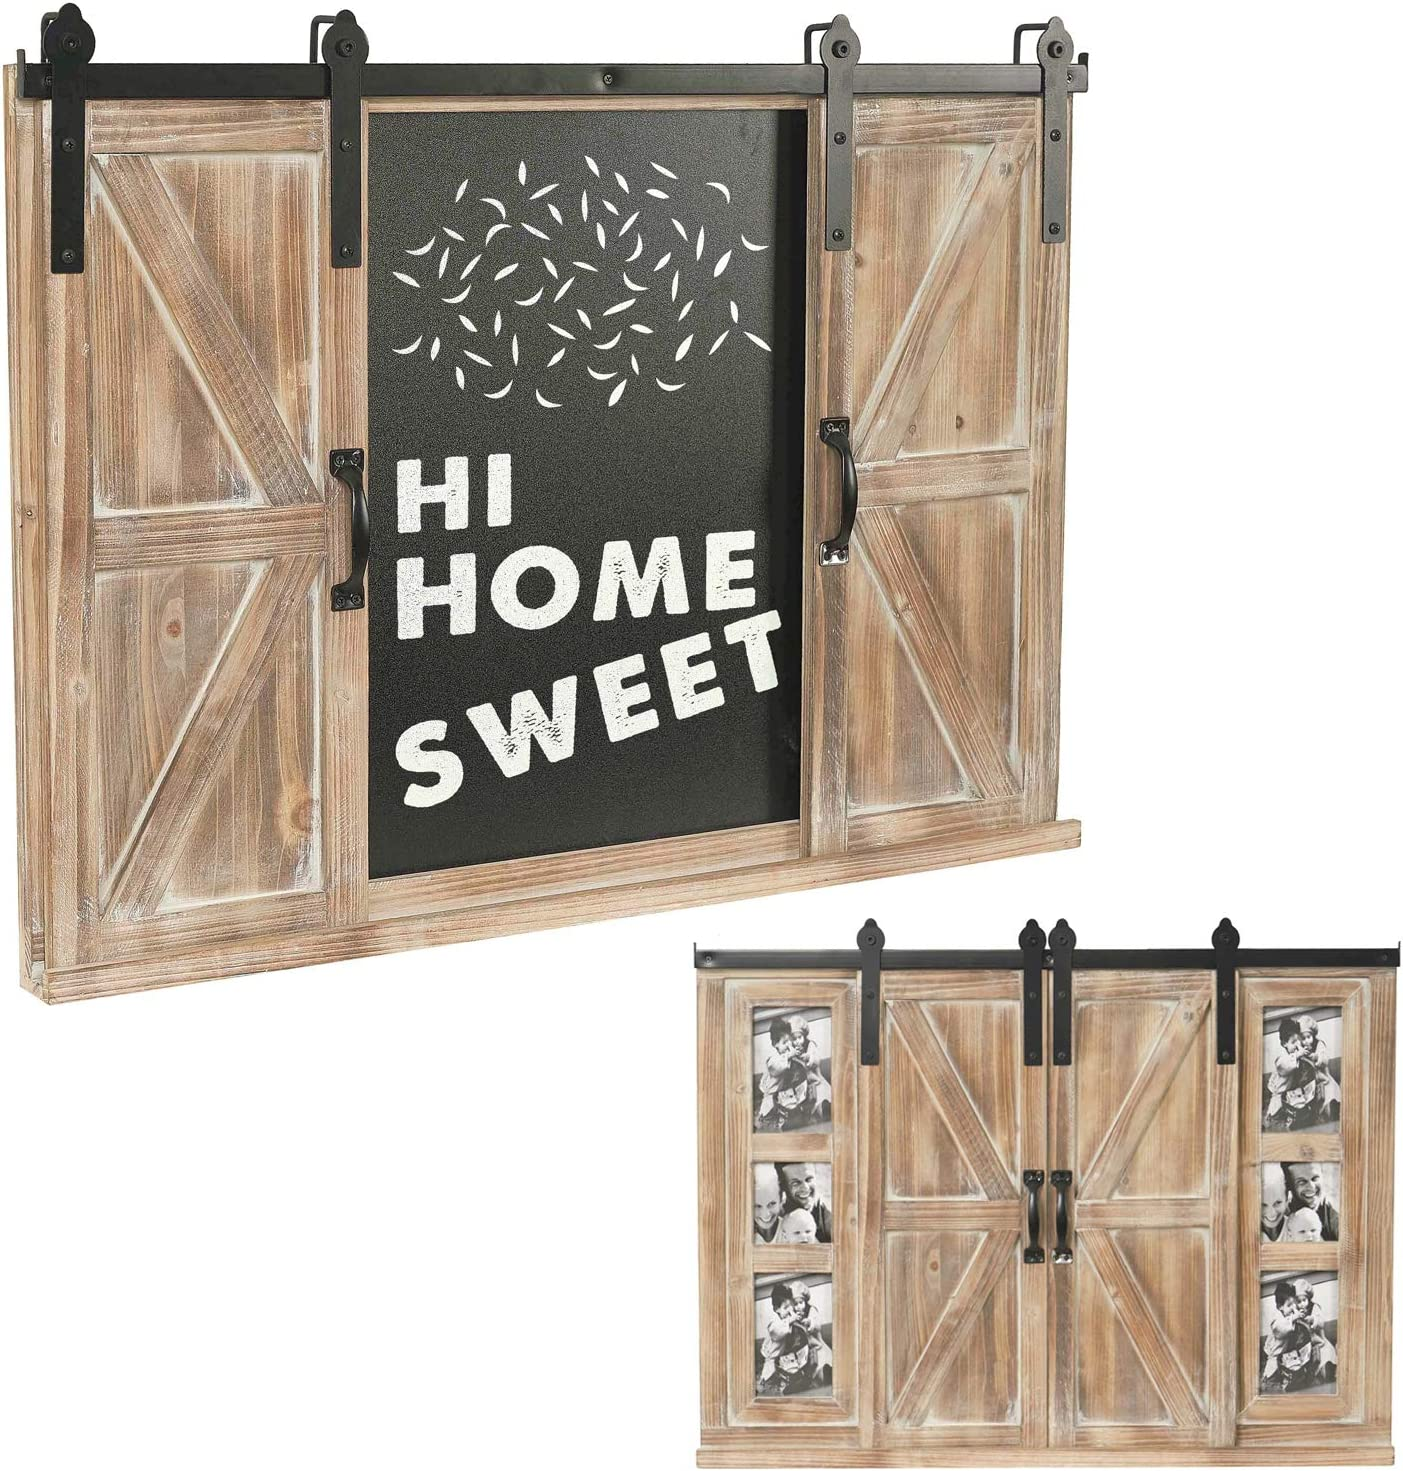 RiteSune Decorative Rustic Wooden Erasable Wall-Mounted Chalkboard, Hanging Wordpad Message Board, Blackboard for Foyer, Living Room